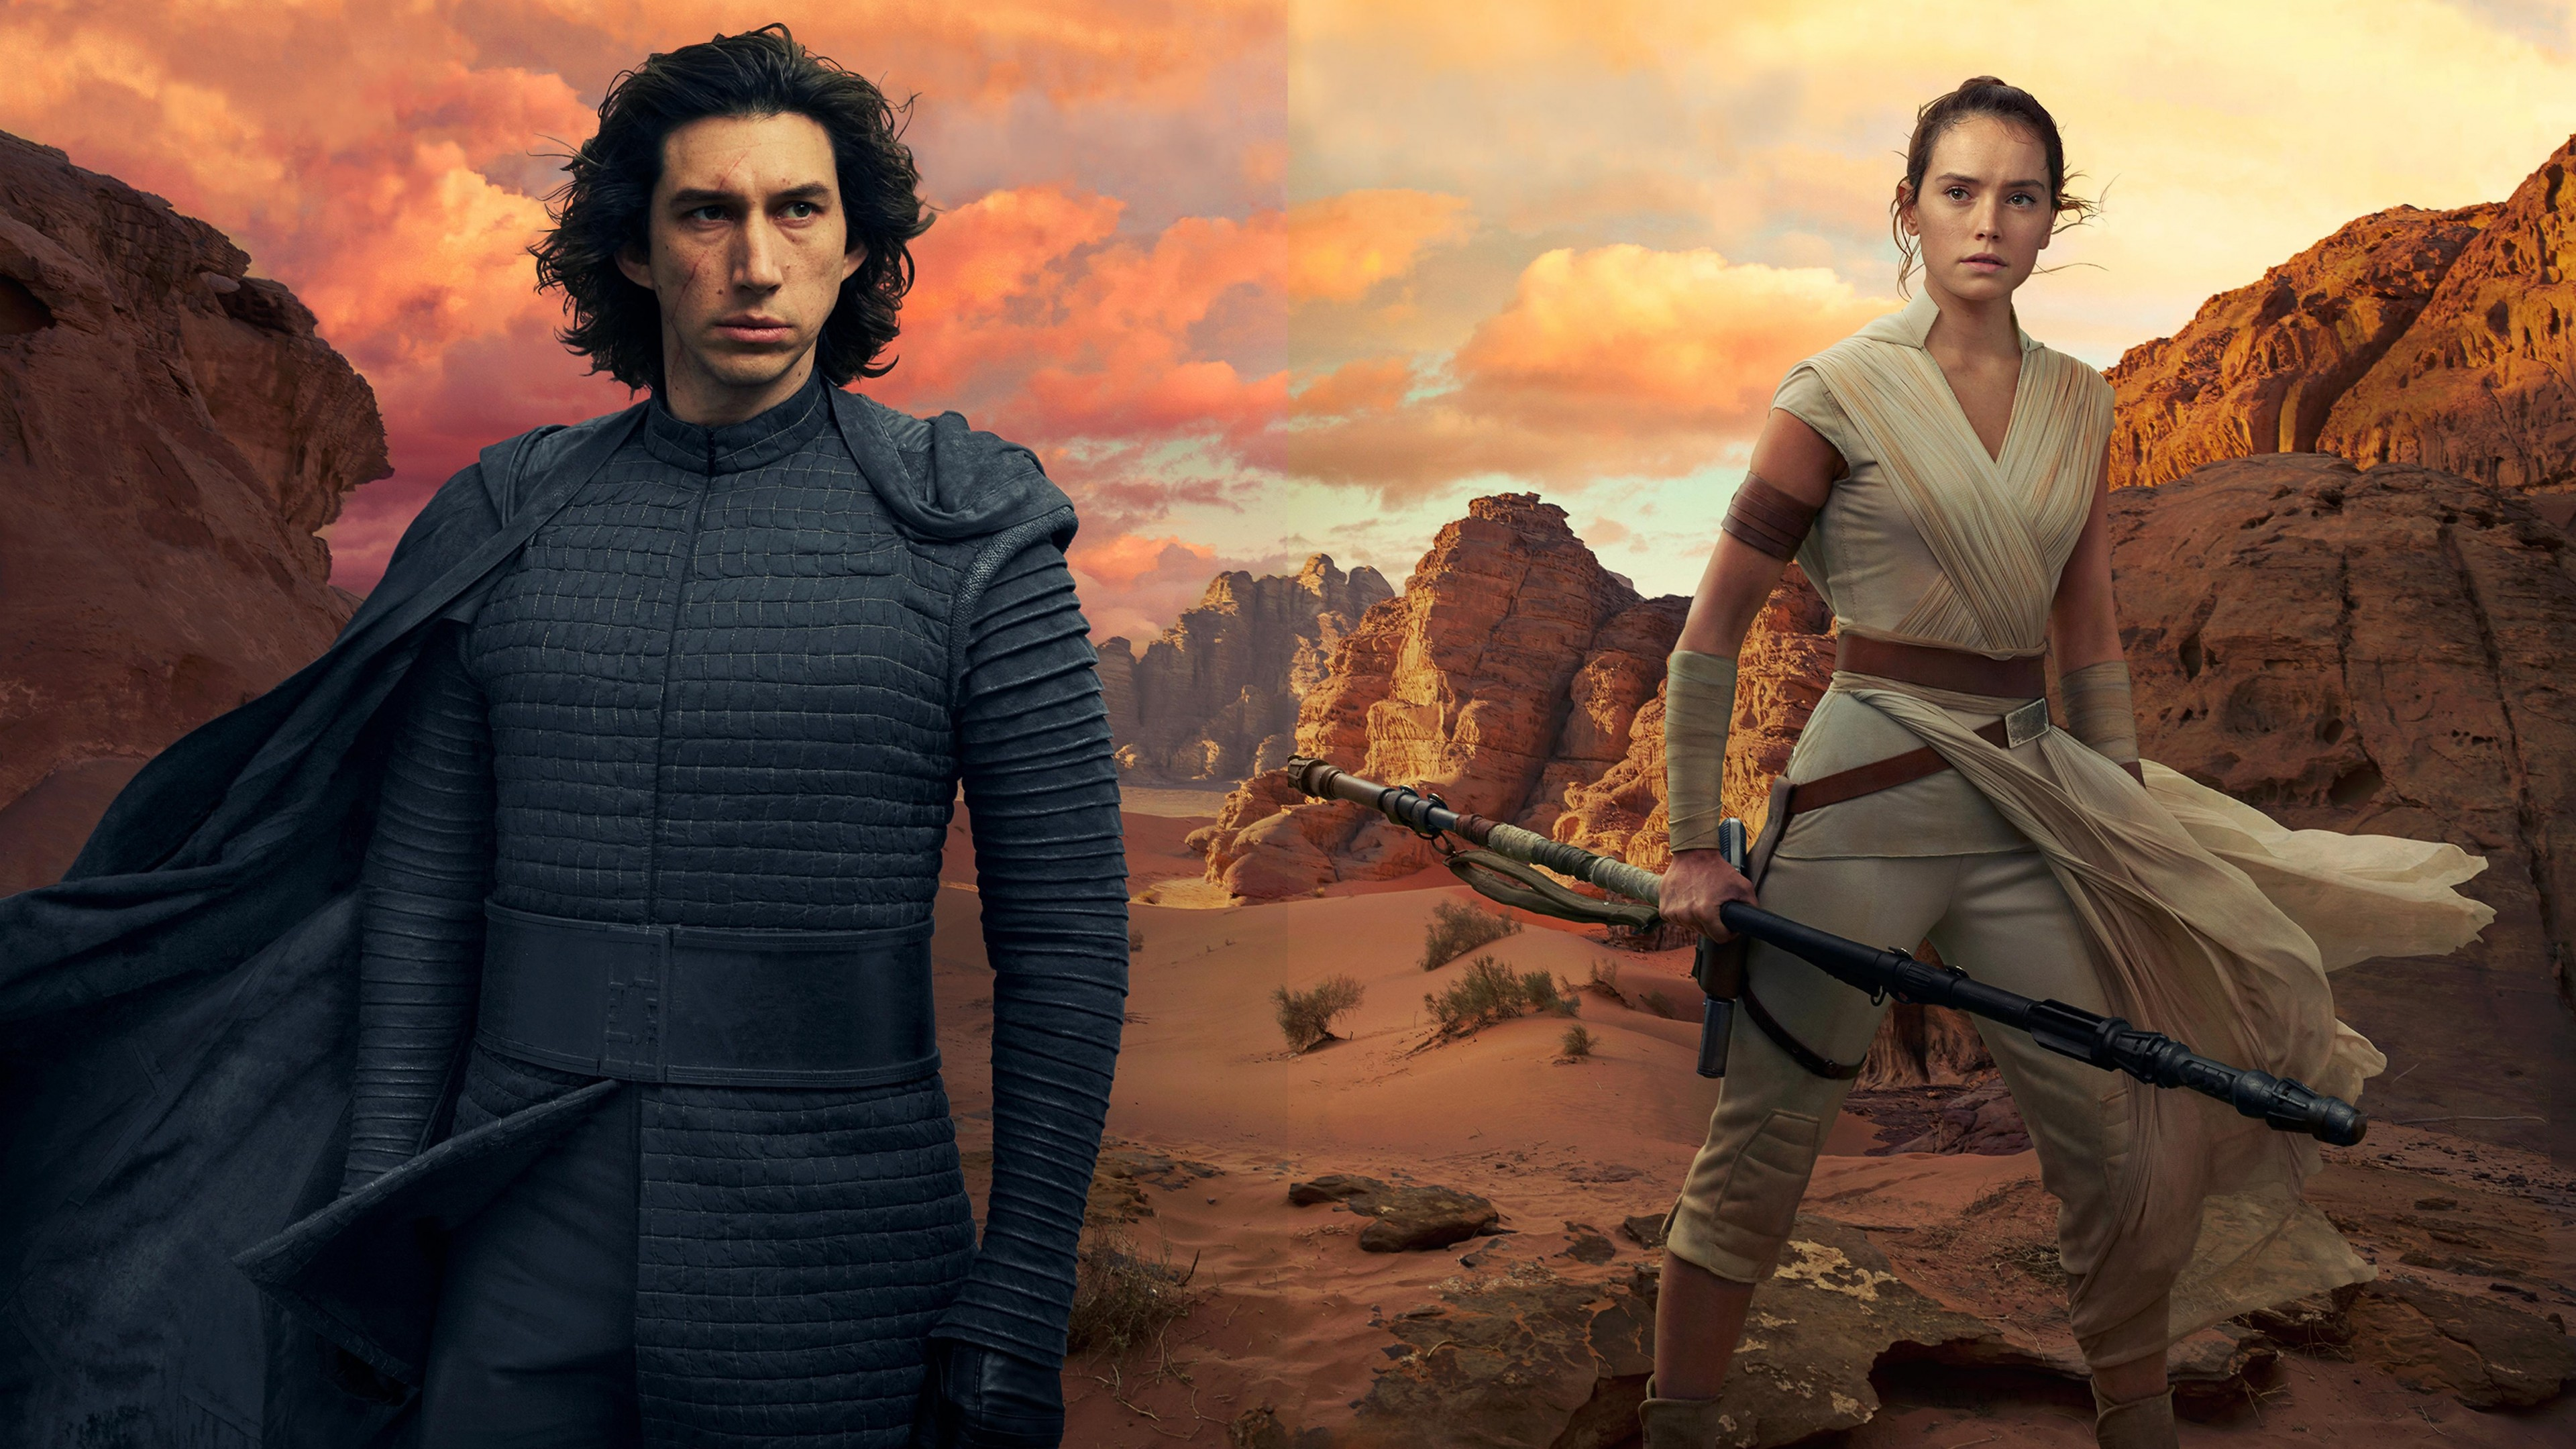 Wallpaper Star Wars The Rise Of Skywalker Adam Driver Daisy Ridley 5k Movies 21783